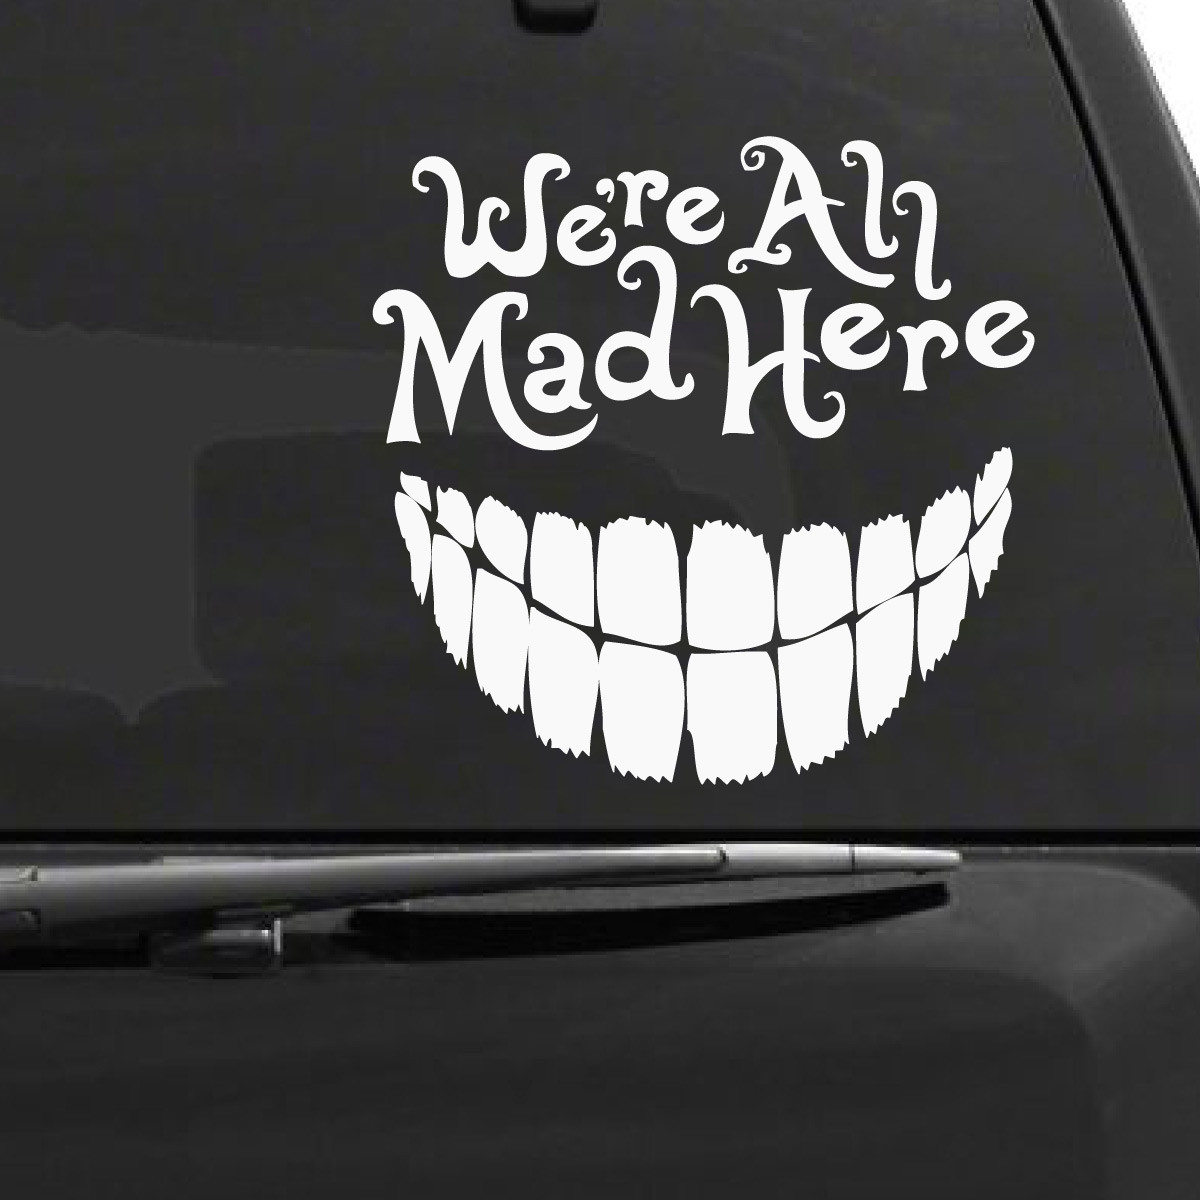 Wall Stickers Family Quotes Alice In Wonderland Cheshire Cat Car Decal The Decal Guru